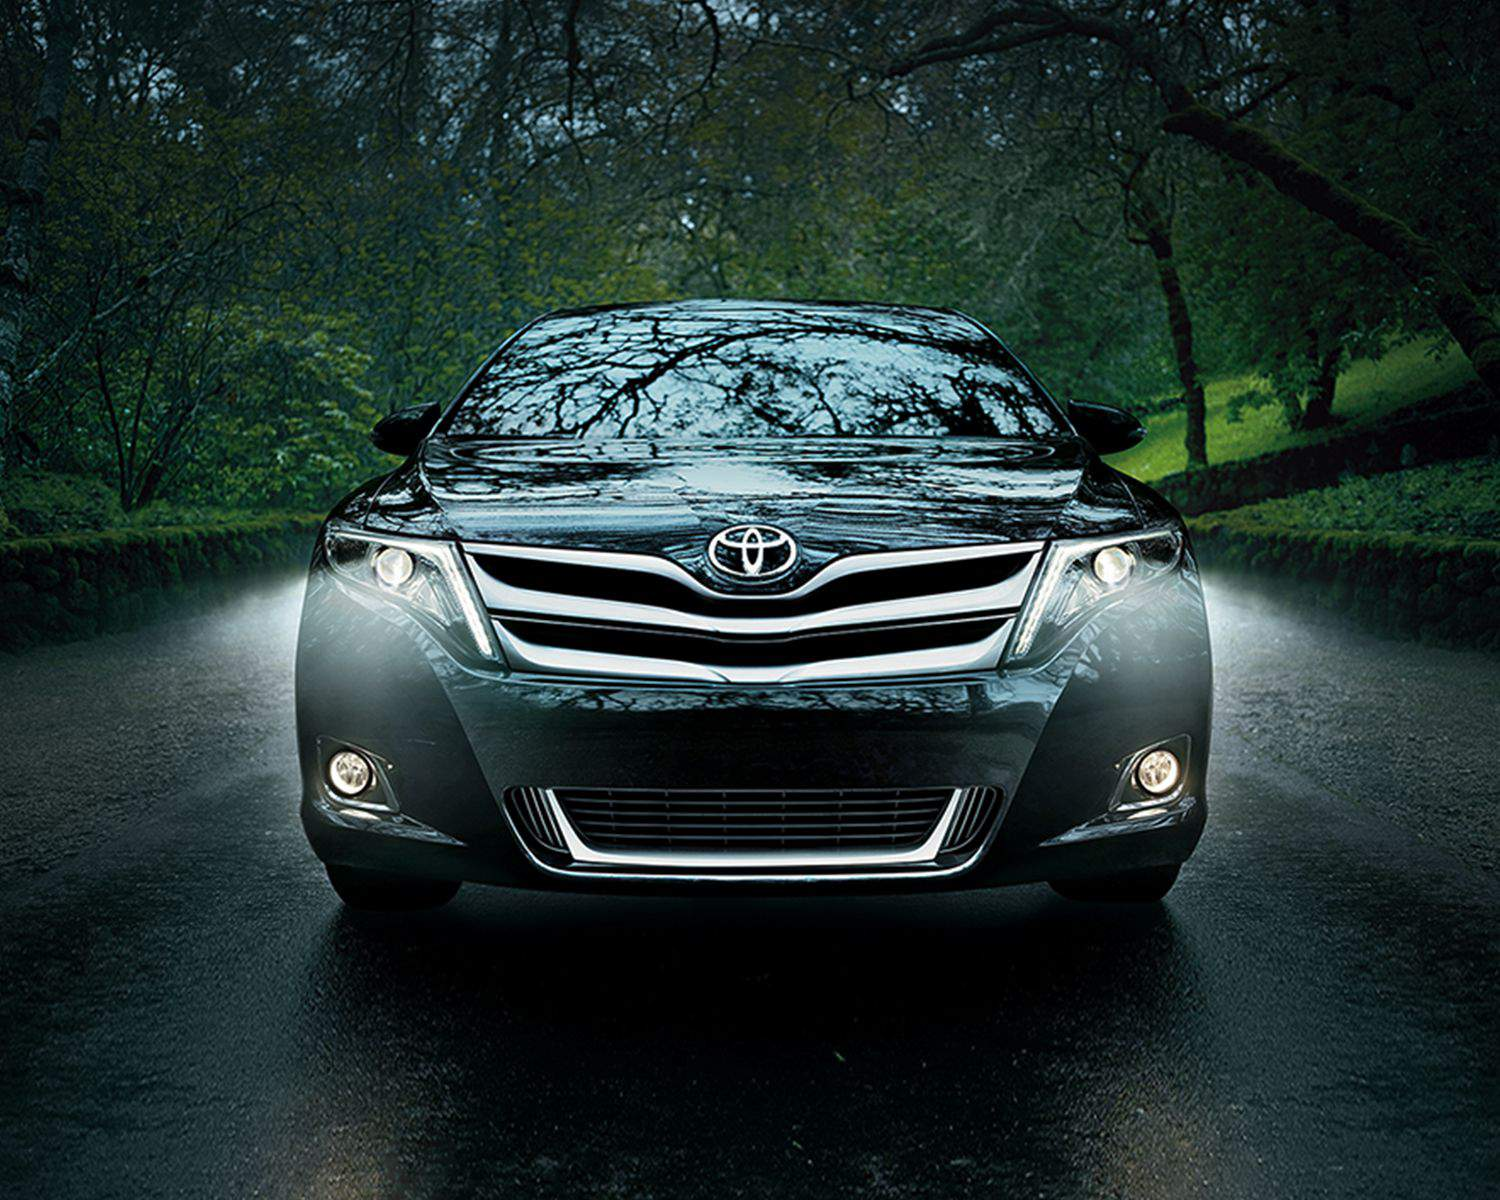 Venza features standard Automatic Headlamp System and Foglamps